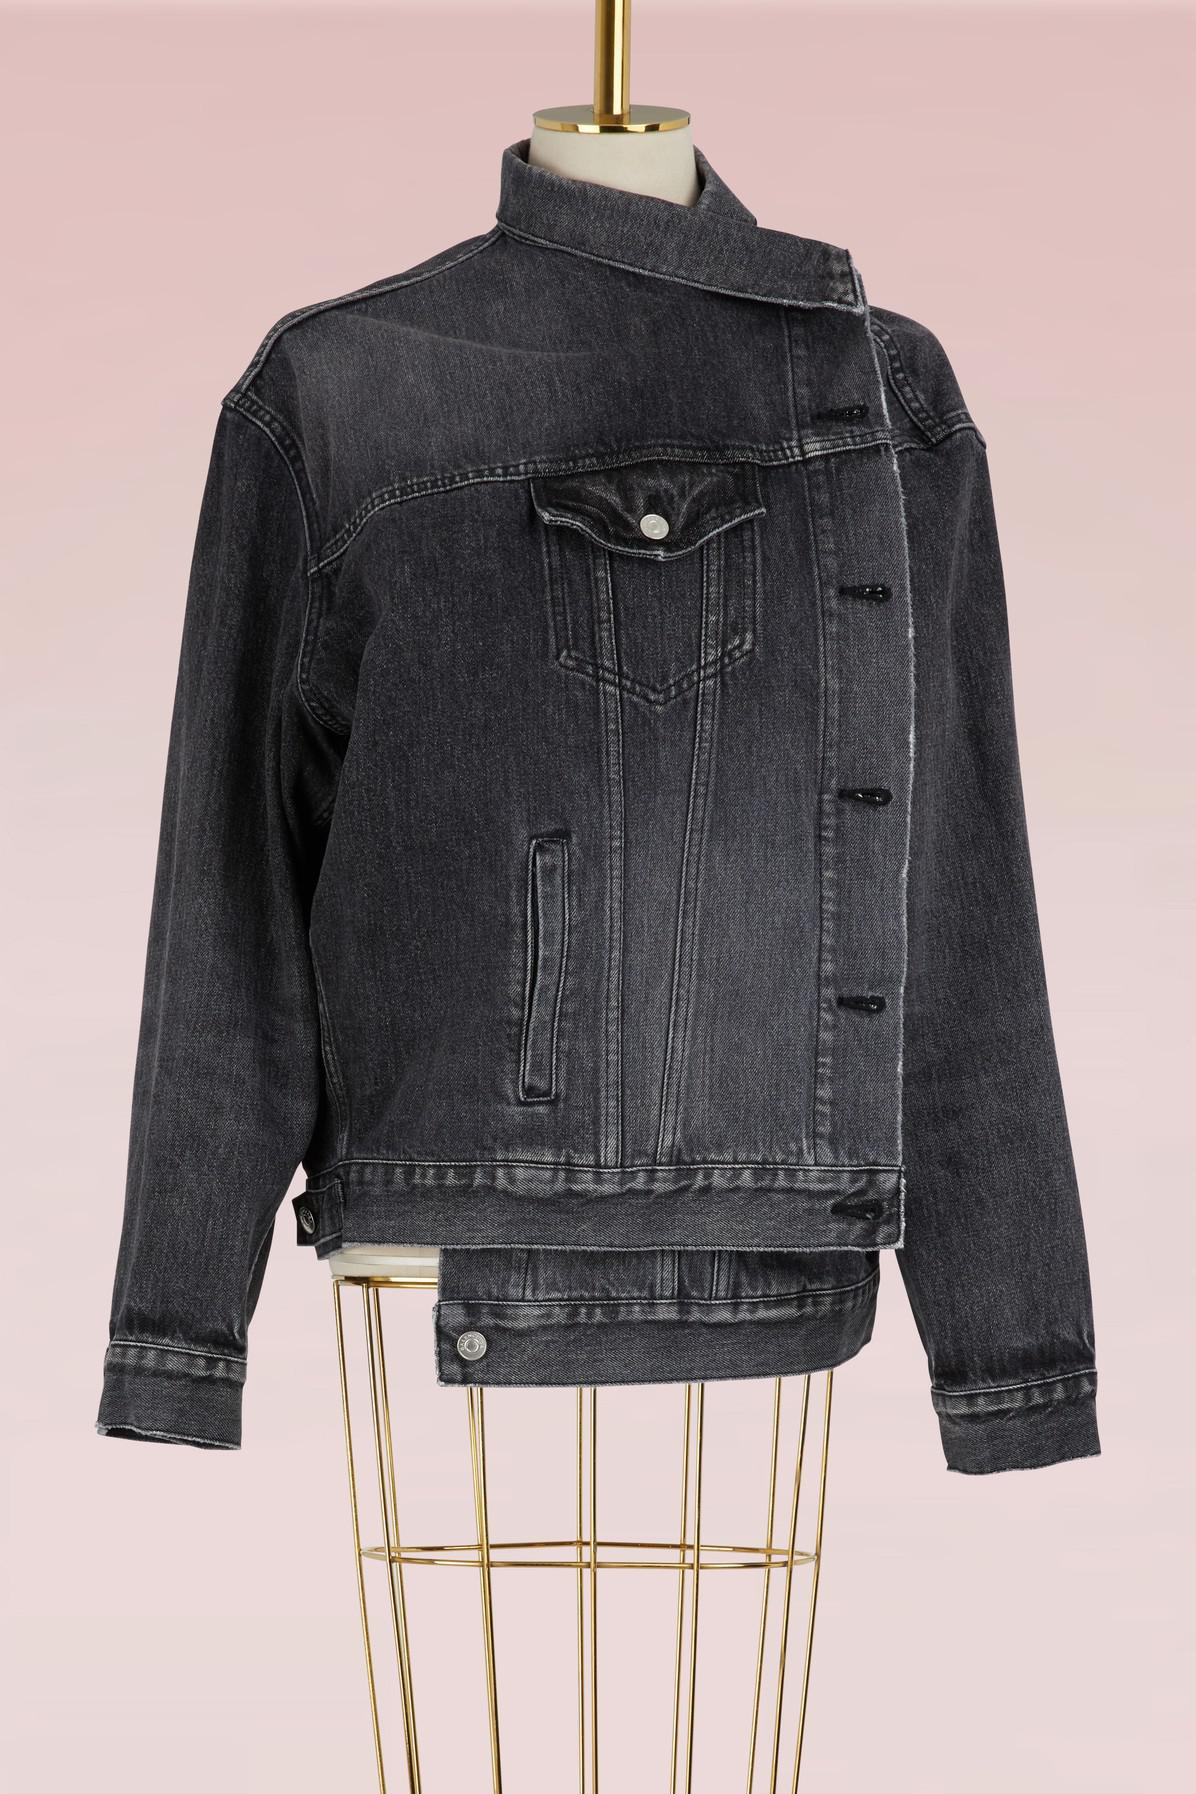 Factory Outlet Layered Quilted Denim And Fringed Gingham Wool Jacket - Black Balenciaga Store For Sale Discount Clearance Visit New For Sale 91aFQk